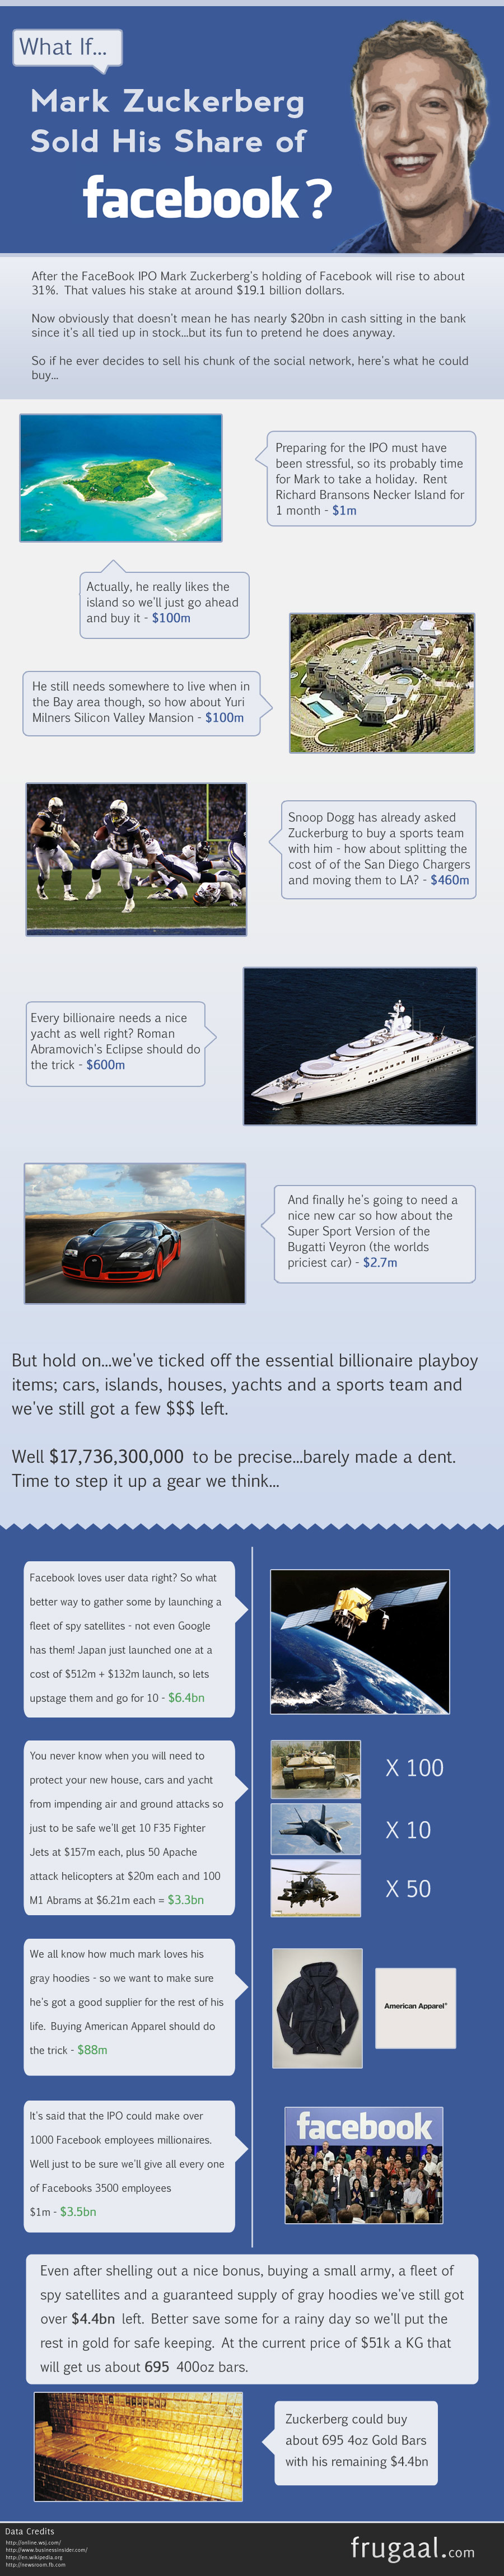 What Could Zuckerberg Buy If He Sold His Share of Facebook? [Infographic]